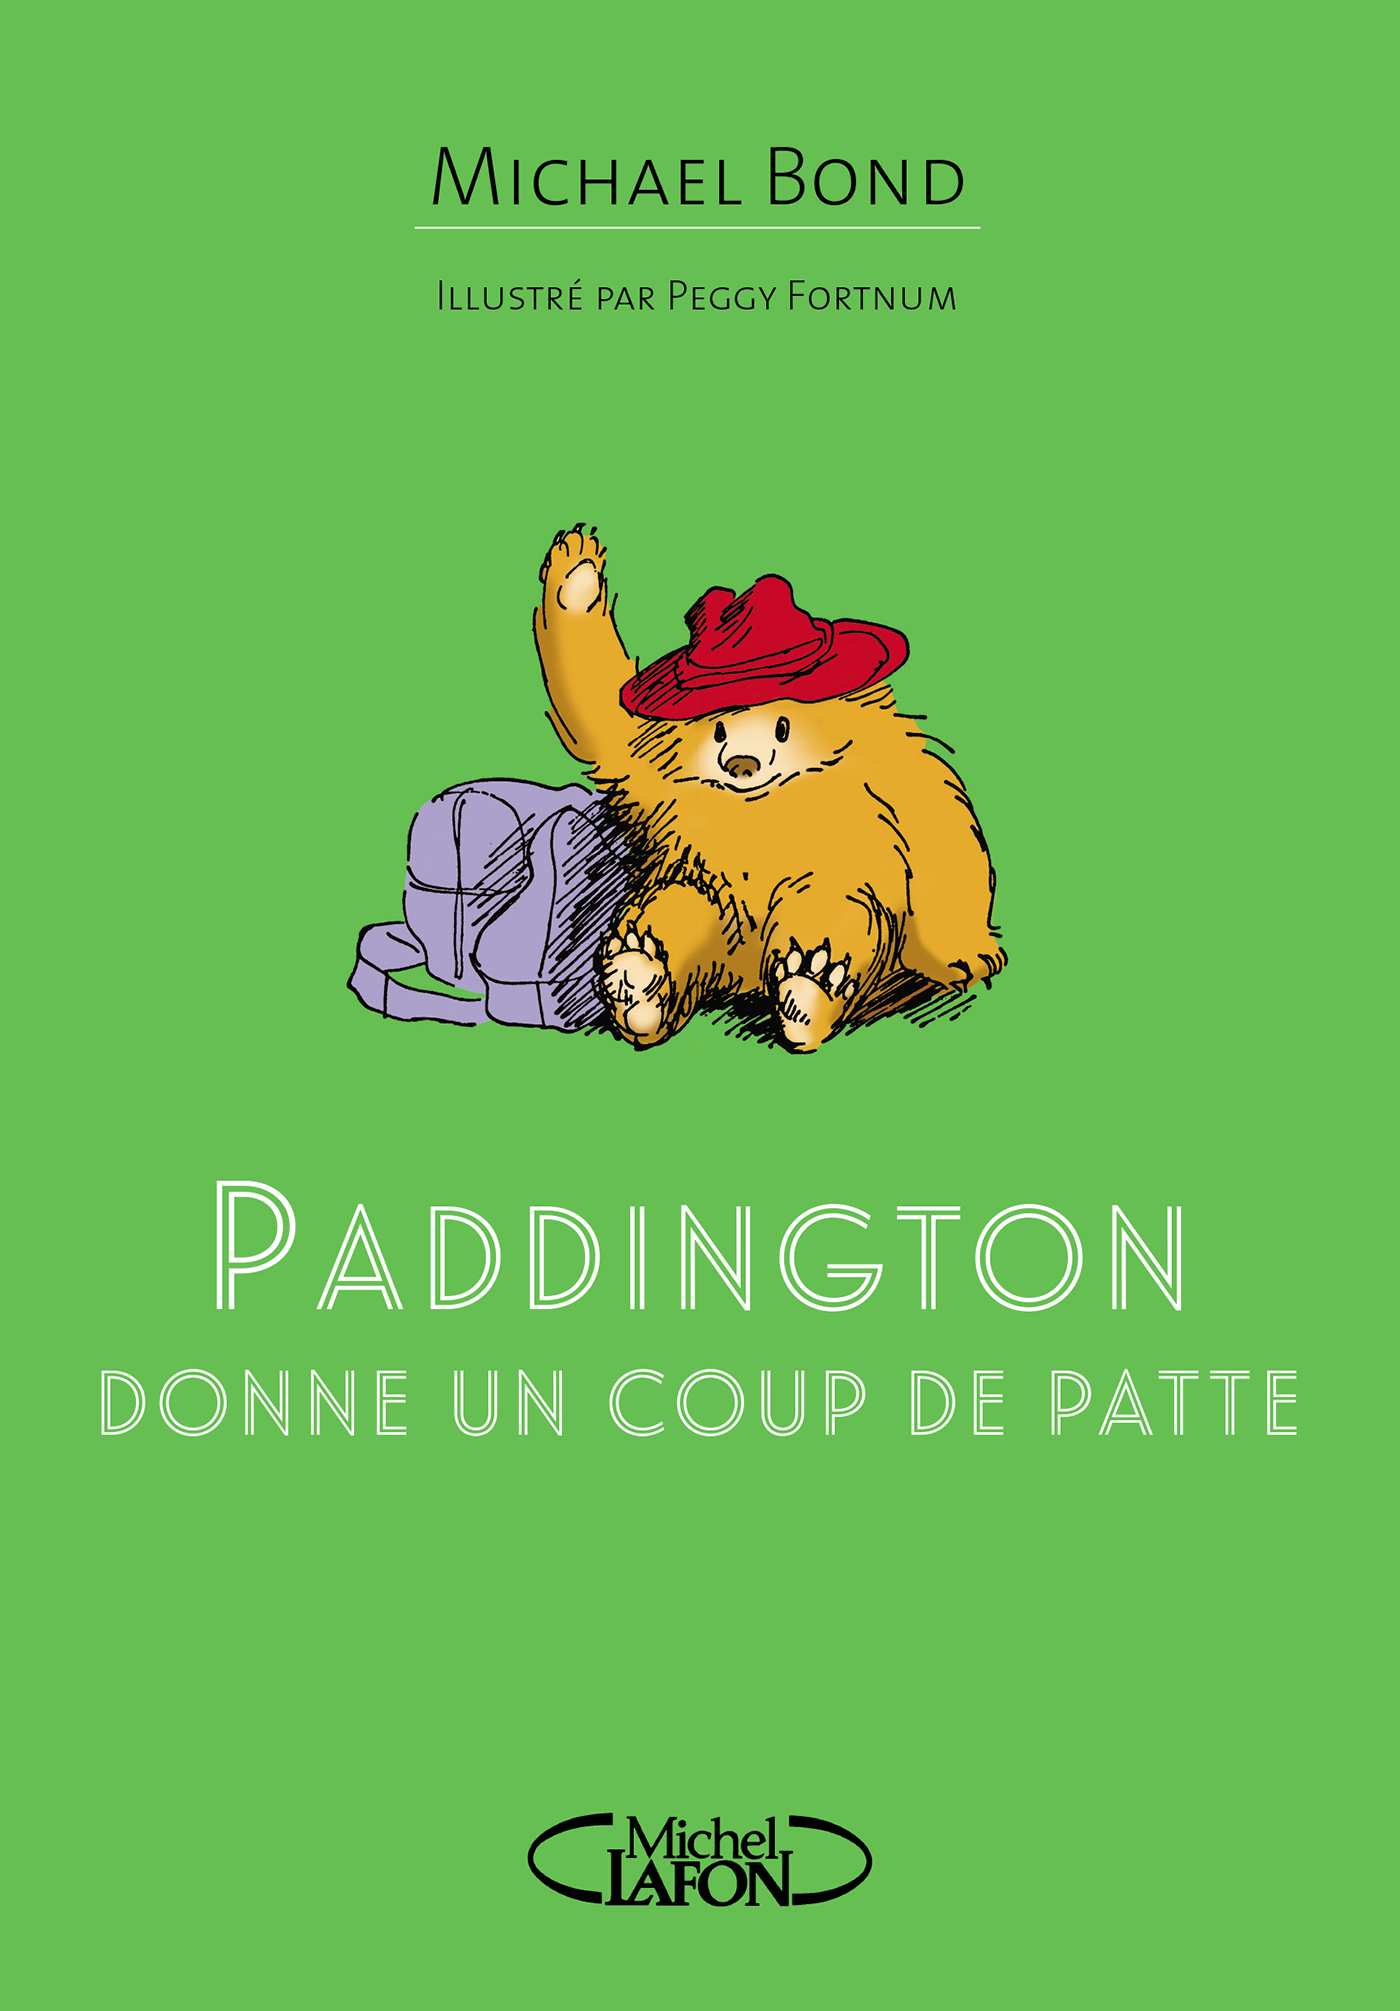 Paddington donne un coup de patte